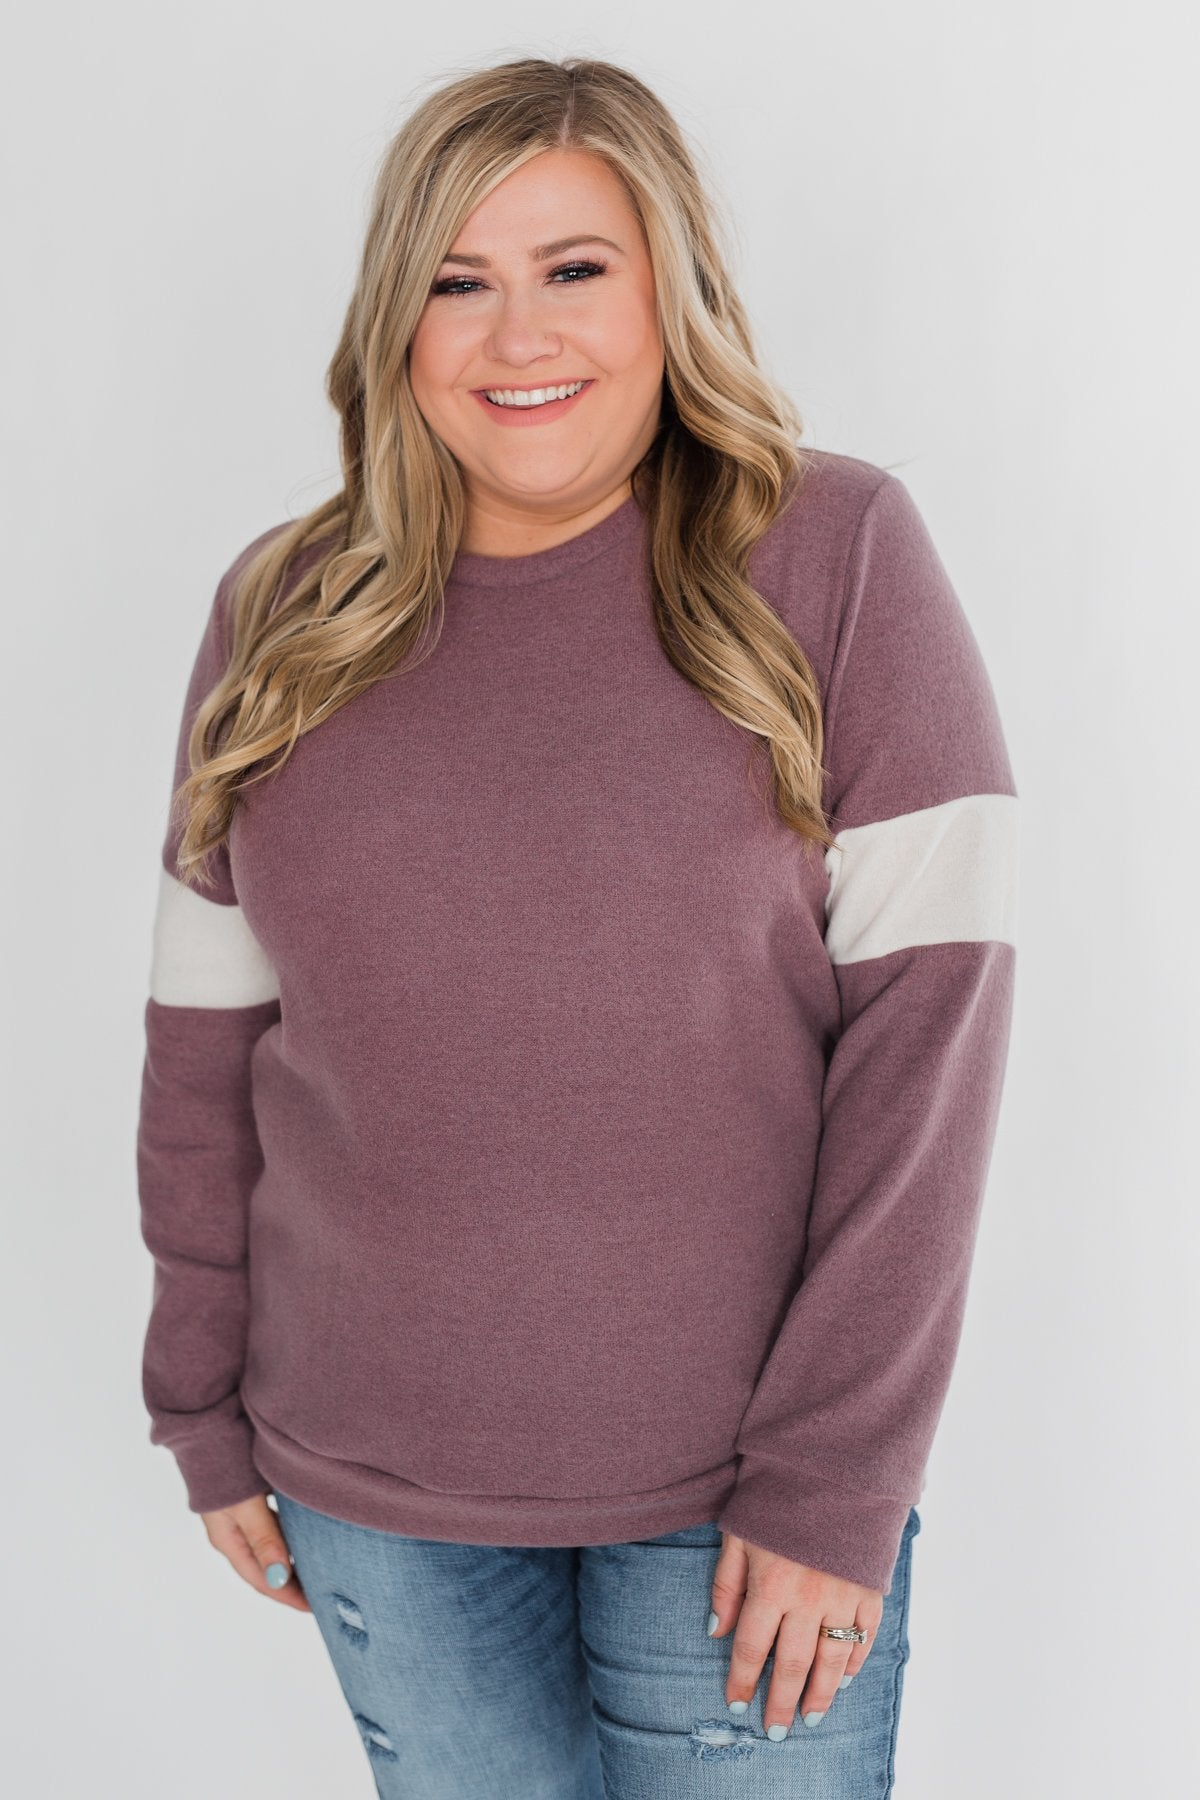 All of Me Long Sleeve Pullover Top - Antique Mauve